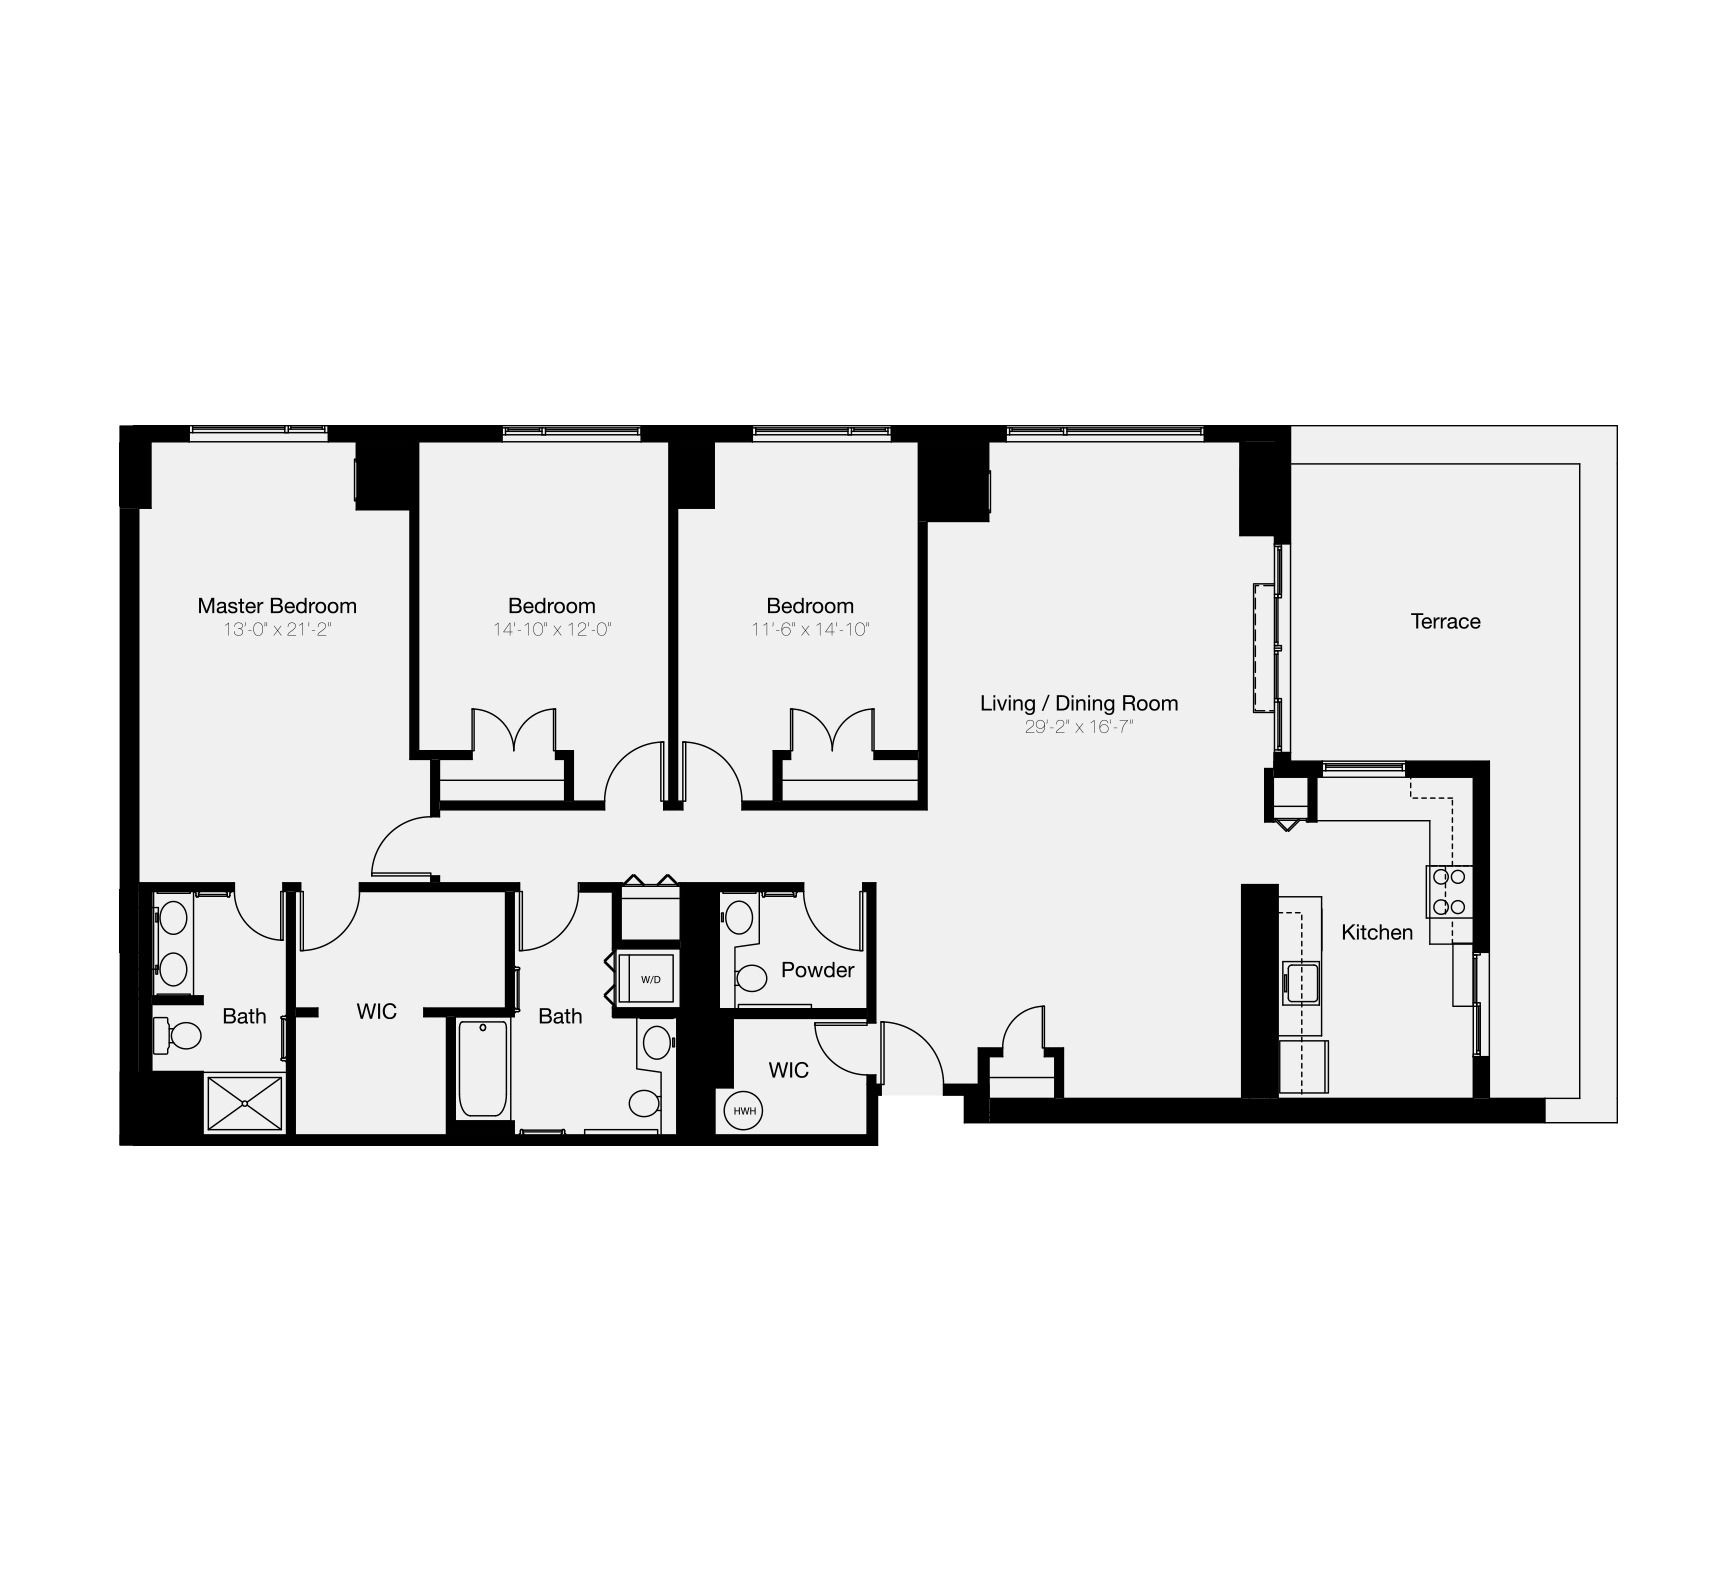 3-bedroom floor plan of Center City Philadelphia condo for sale